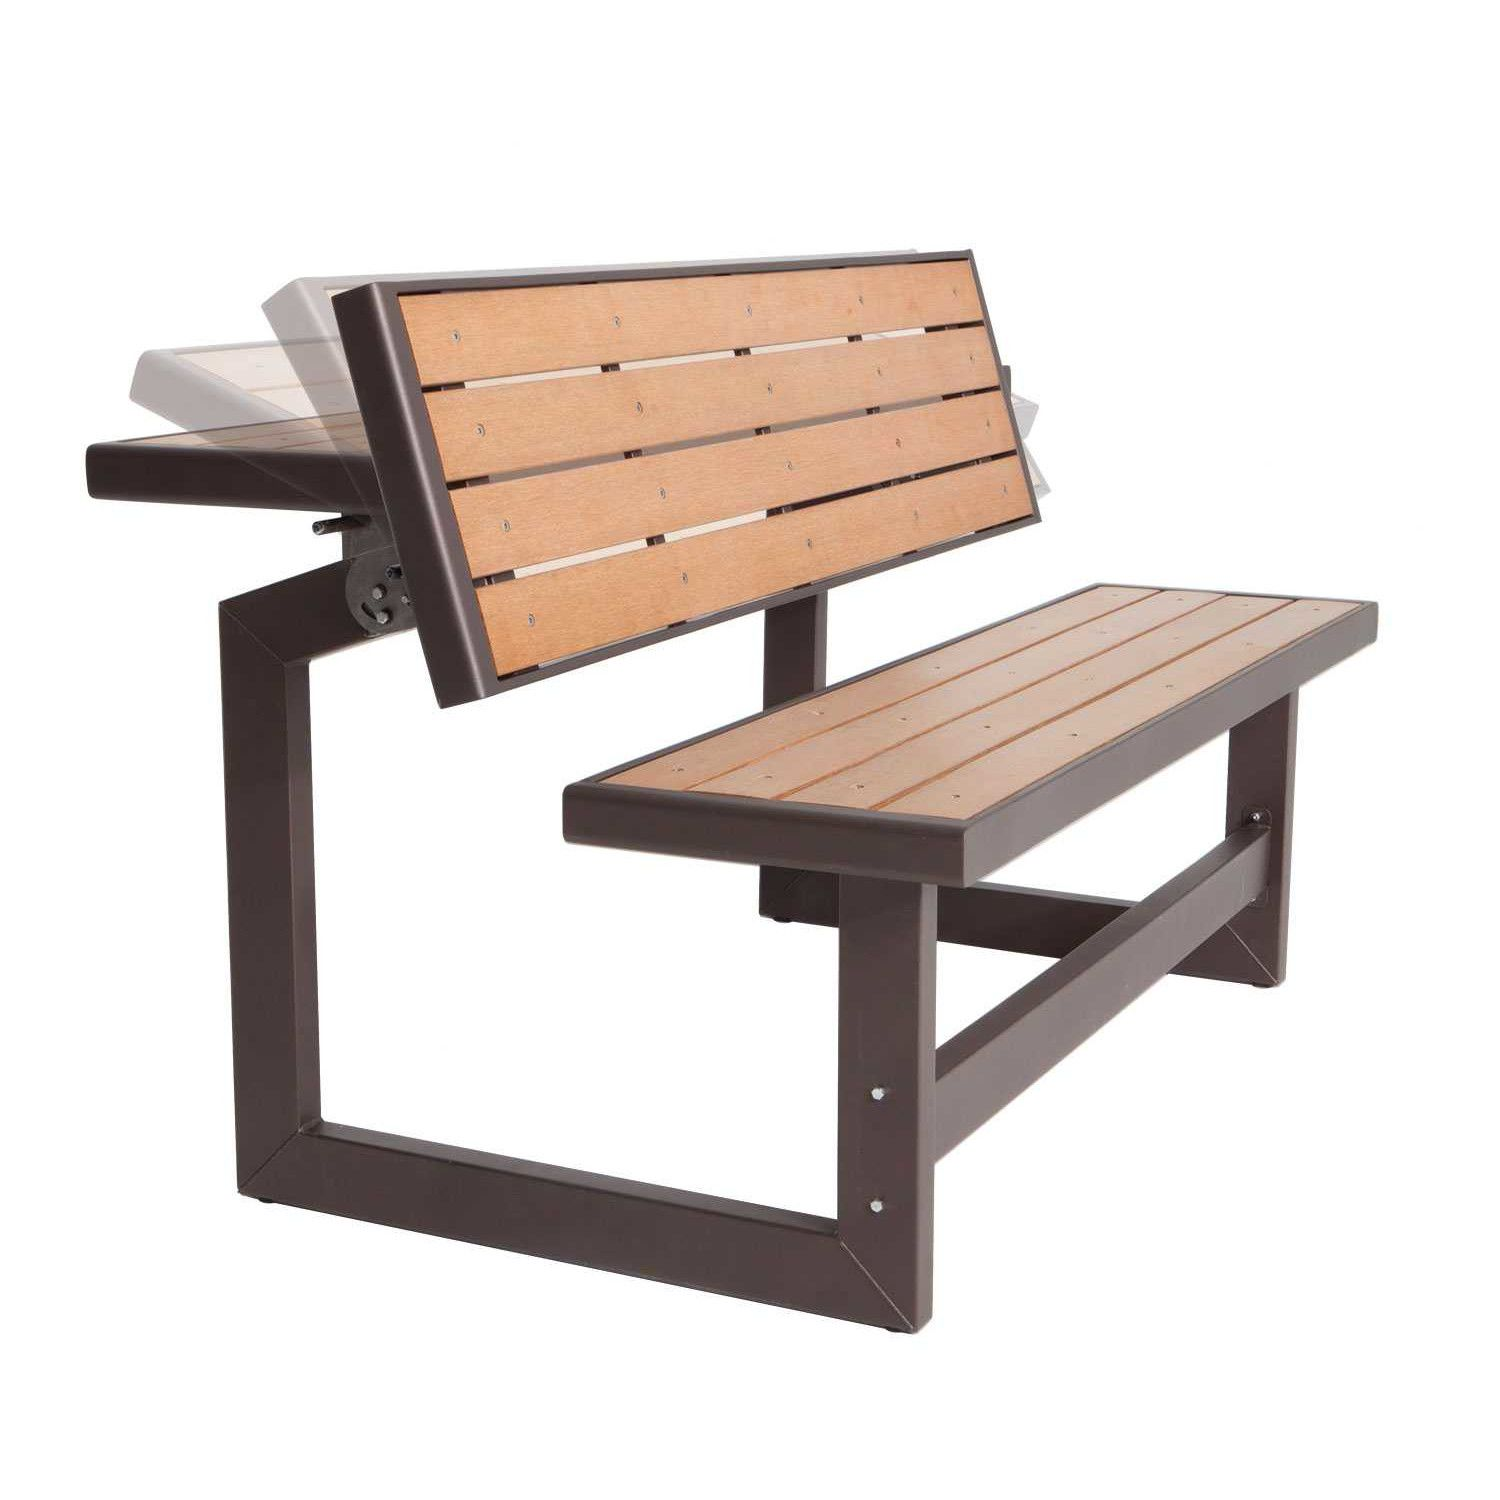 Lifetime Convertible Wood And Metal Park Bench Furniture In 2019